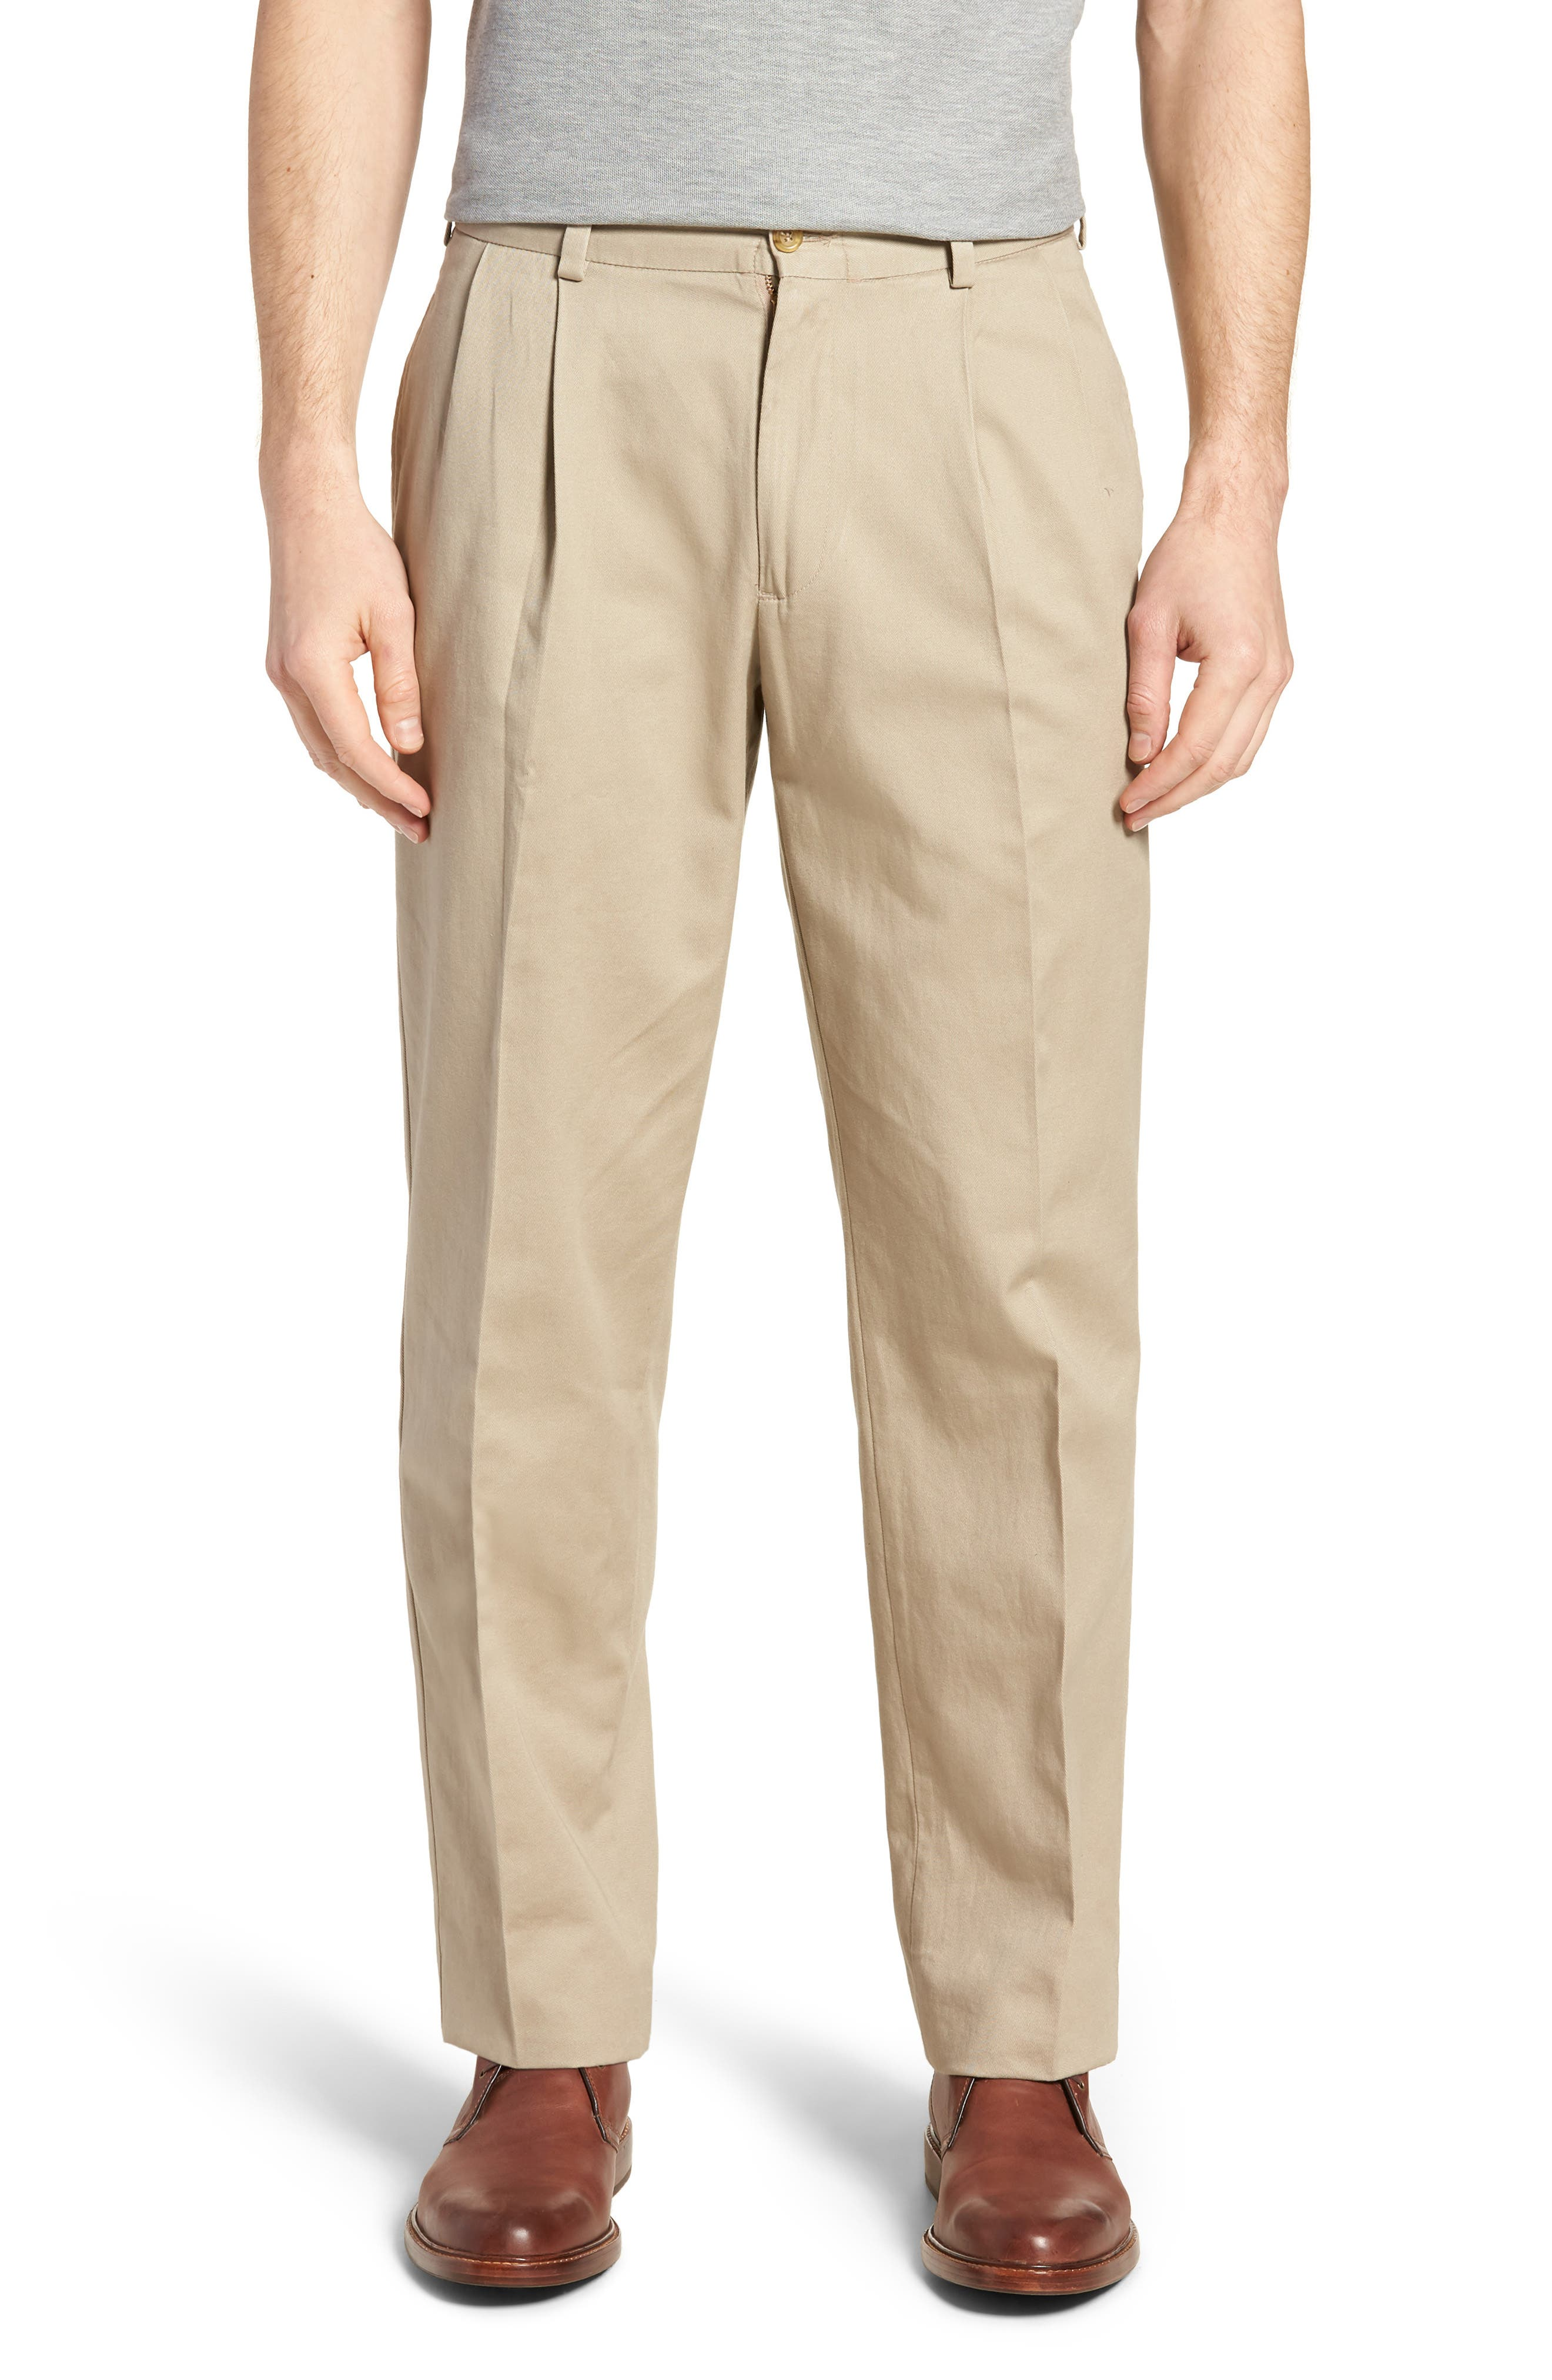 97229dcf9530a7 Men's Pleated Pants | Nordstrom